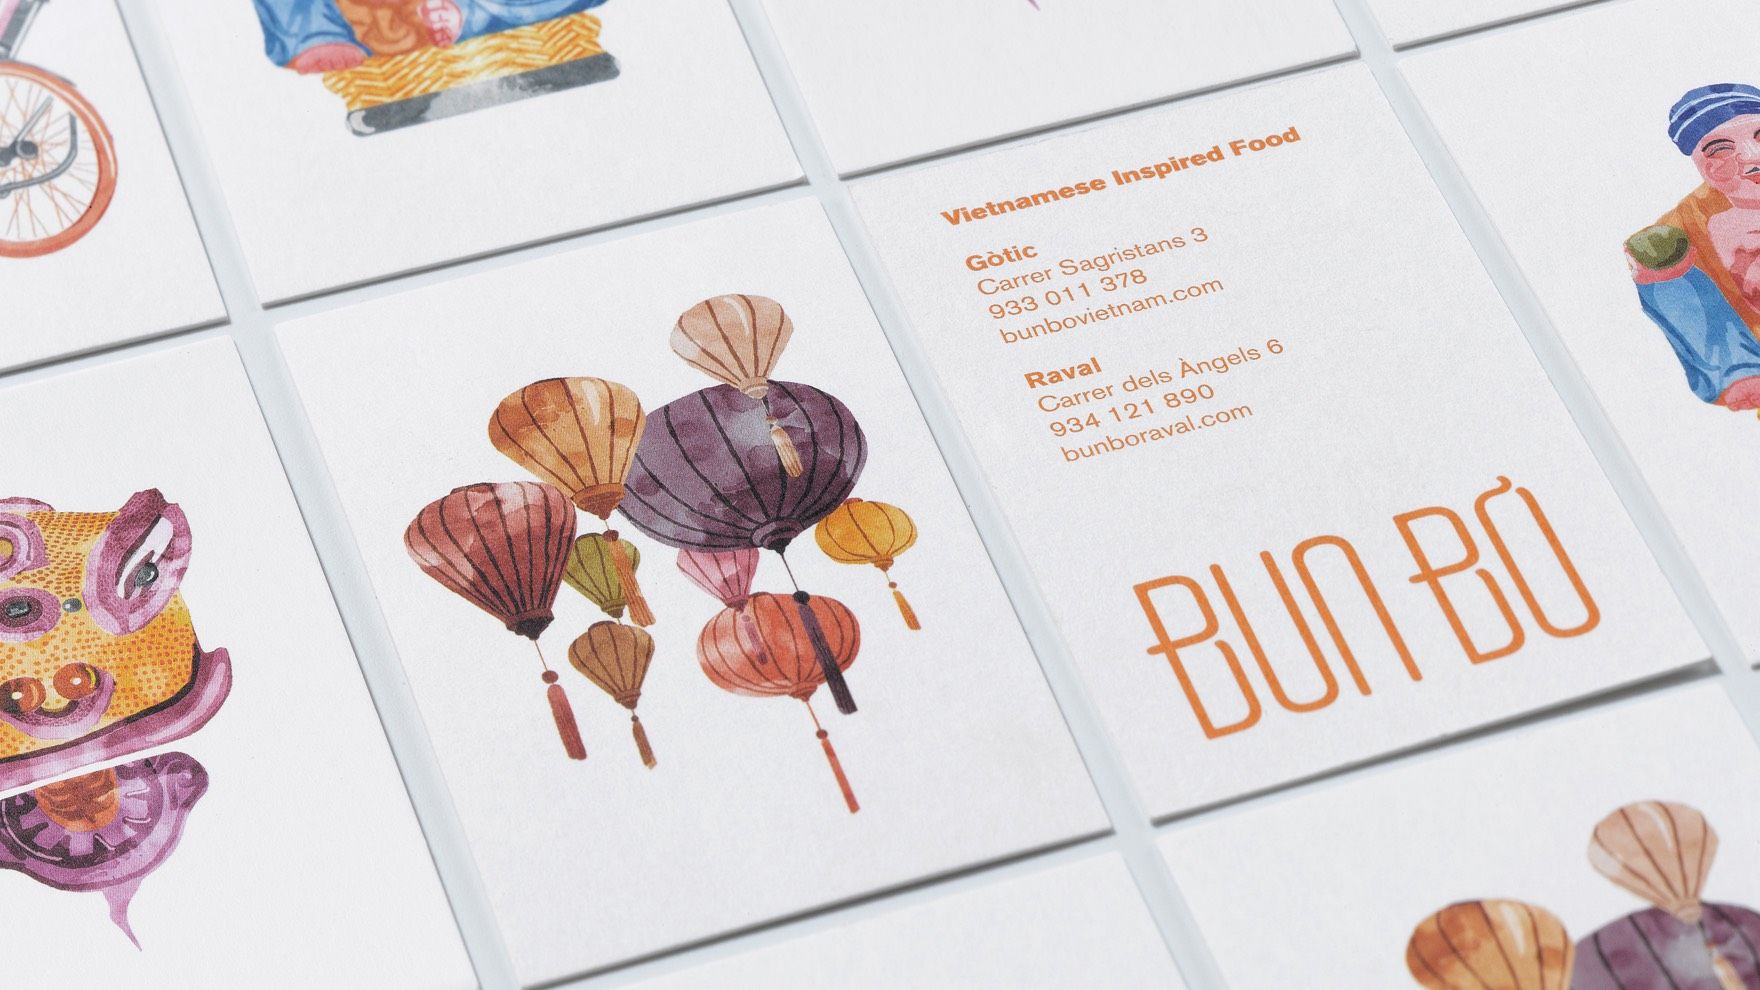 BUN BÒ / GRAPHIC DESIGN